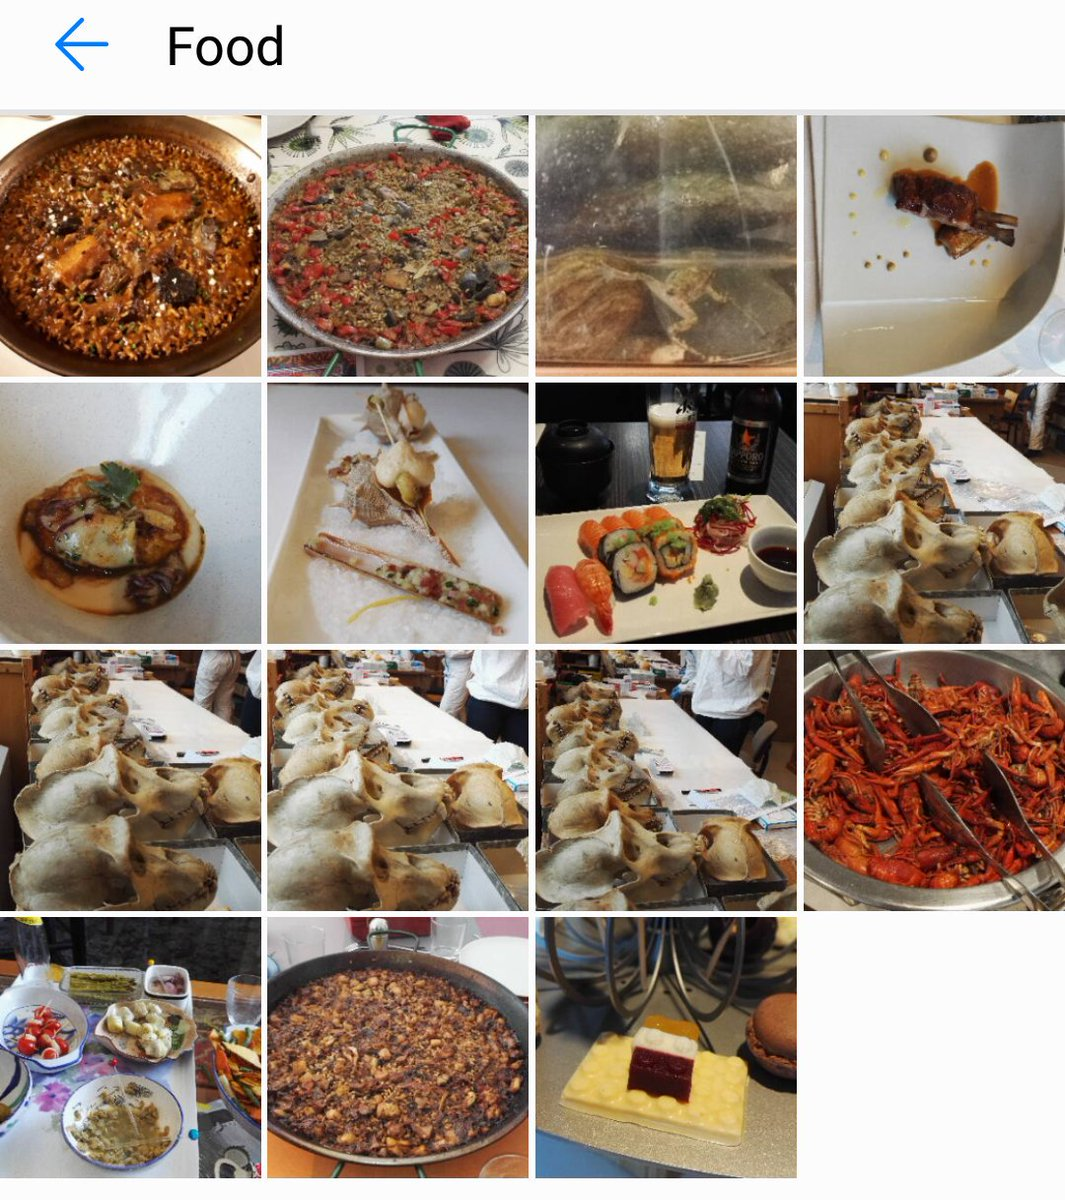 Tomas marques bonet on twitter loved the algorithm of food tomas marques bonet on twitter loved the algorithm of food classification in my cellphone spot the 5 mistakes evohuawei skullsandfrogs forumfinder Choice Image